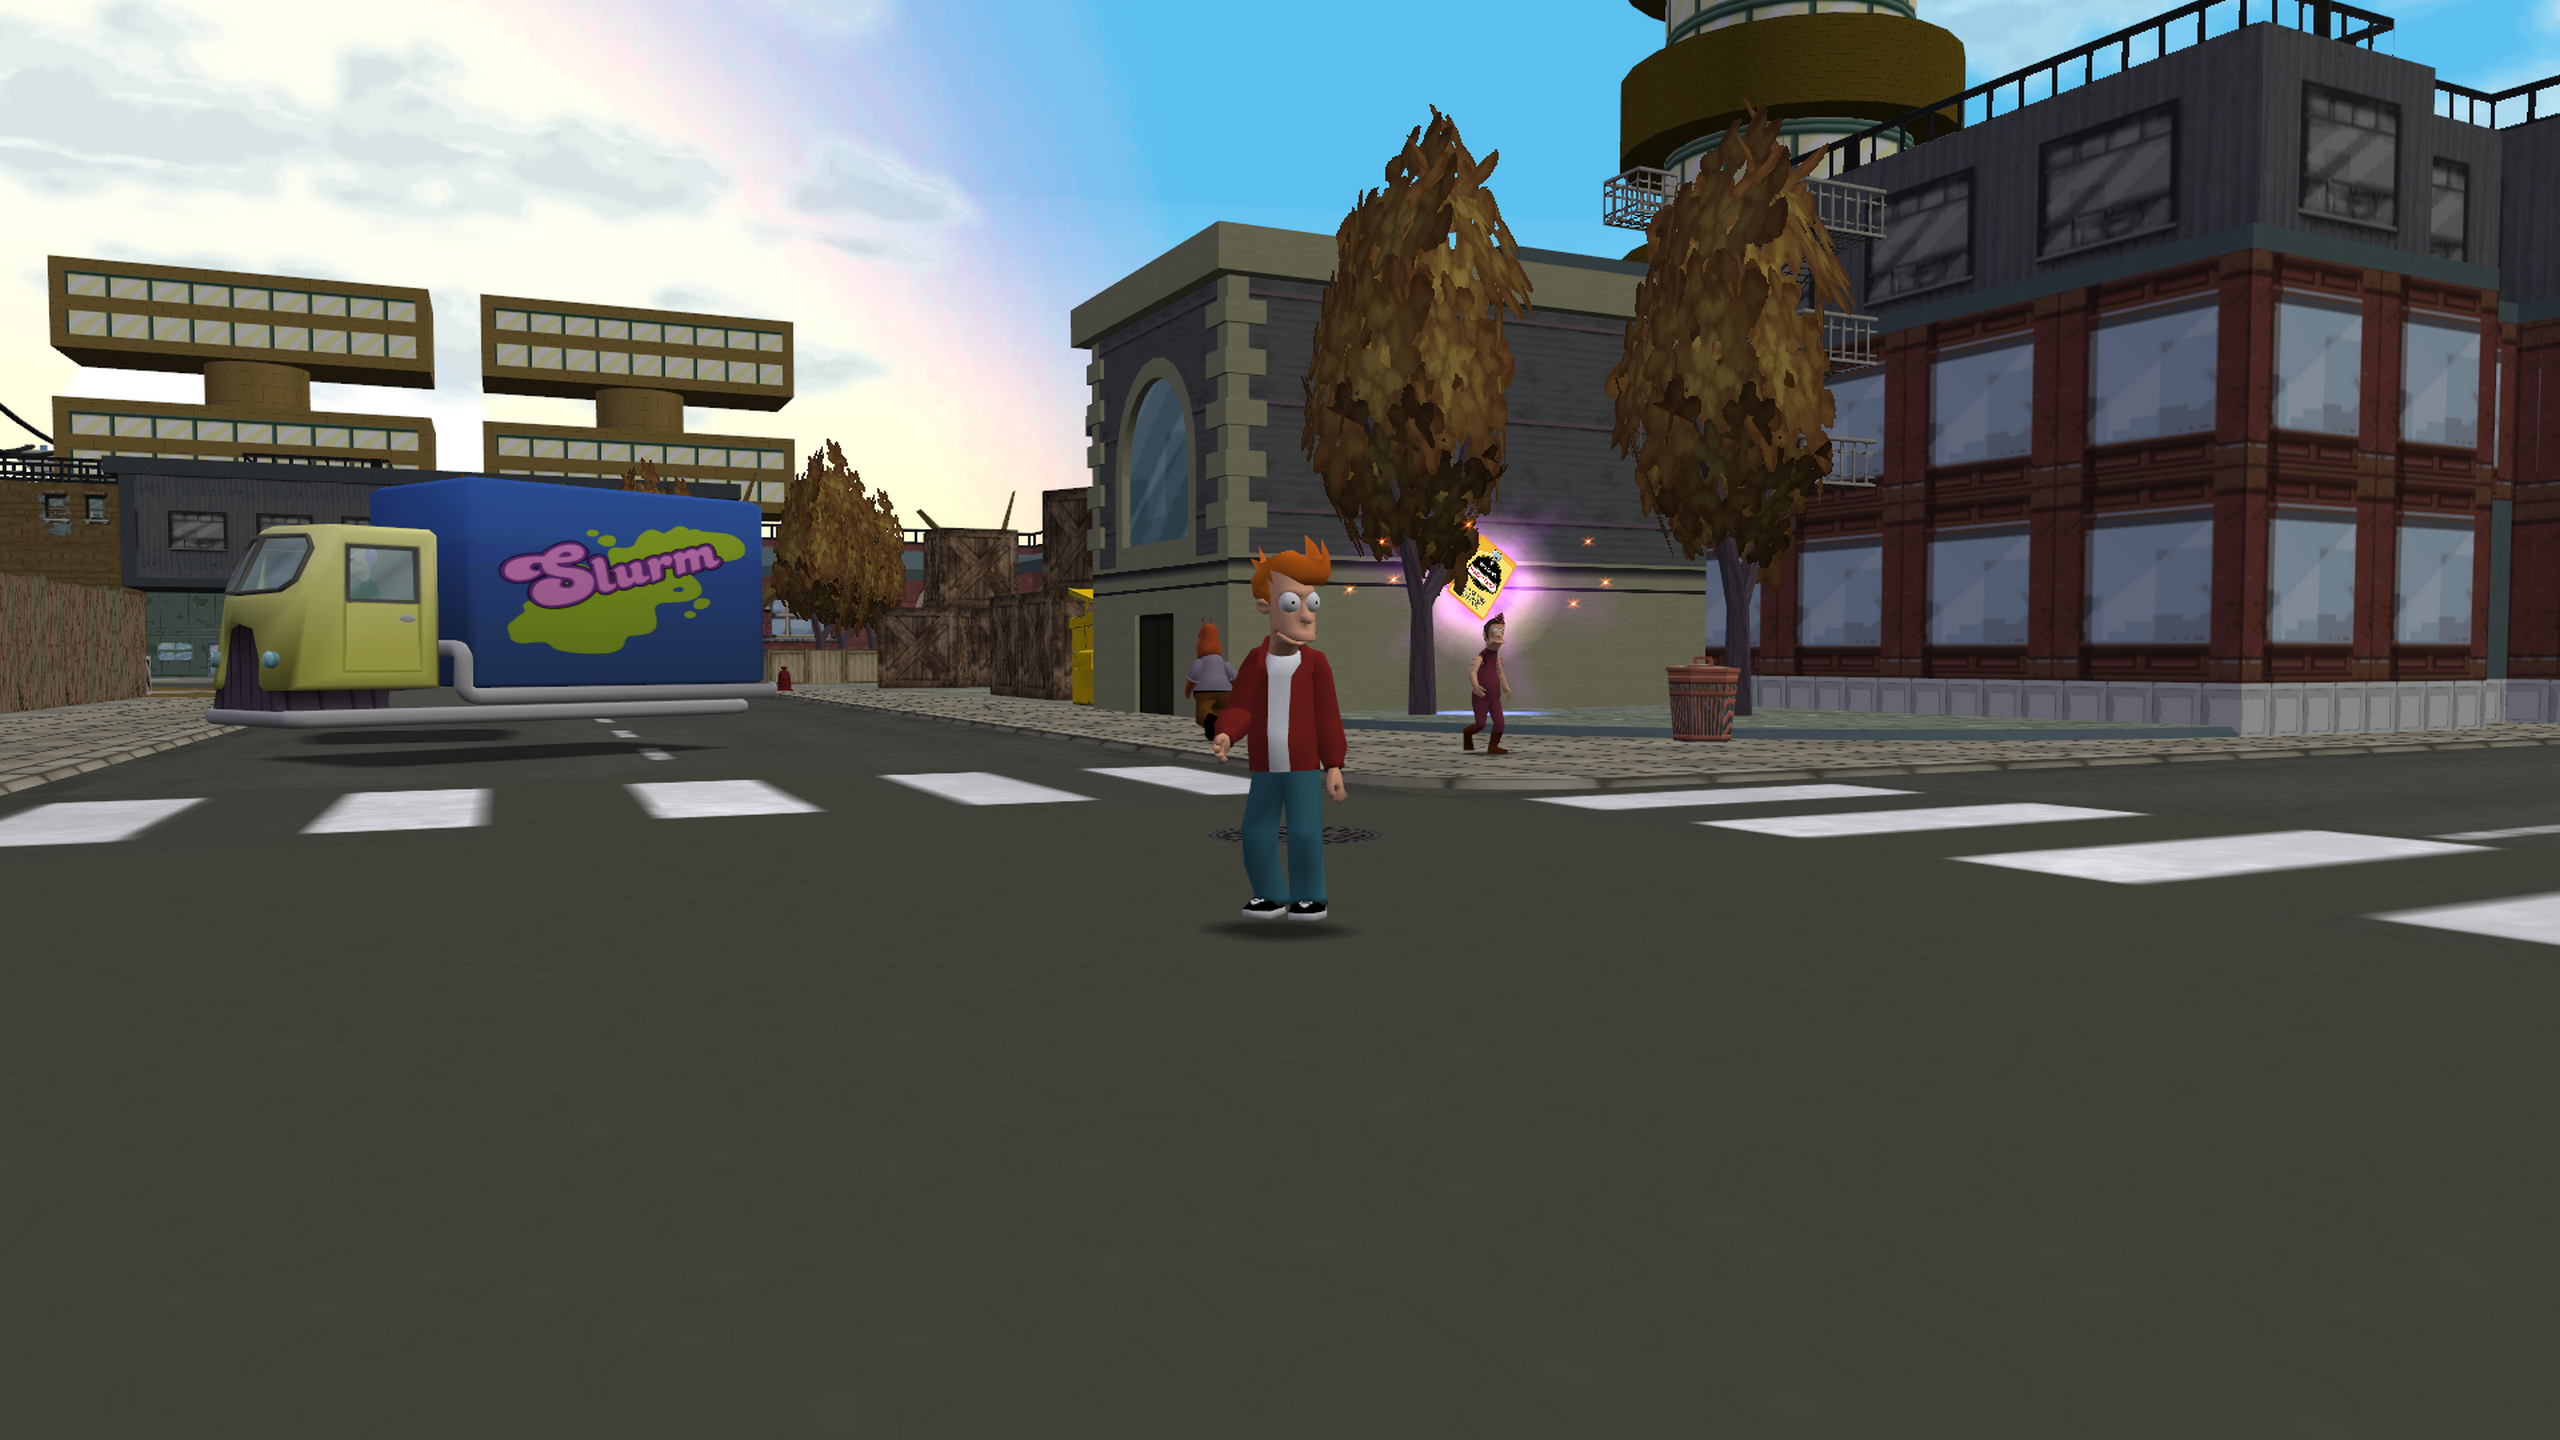 Fry standing in the New New York City streets.